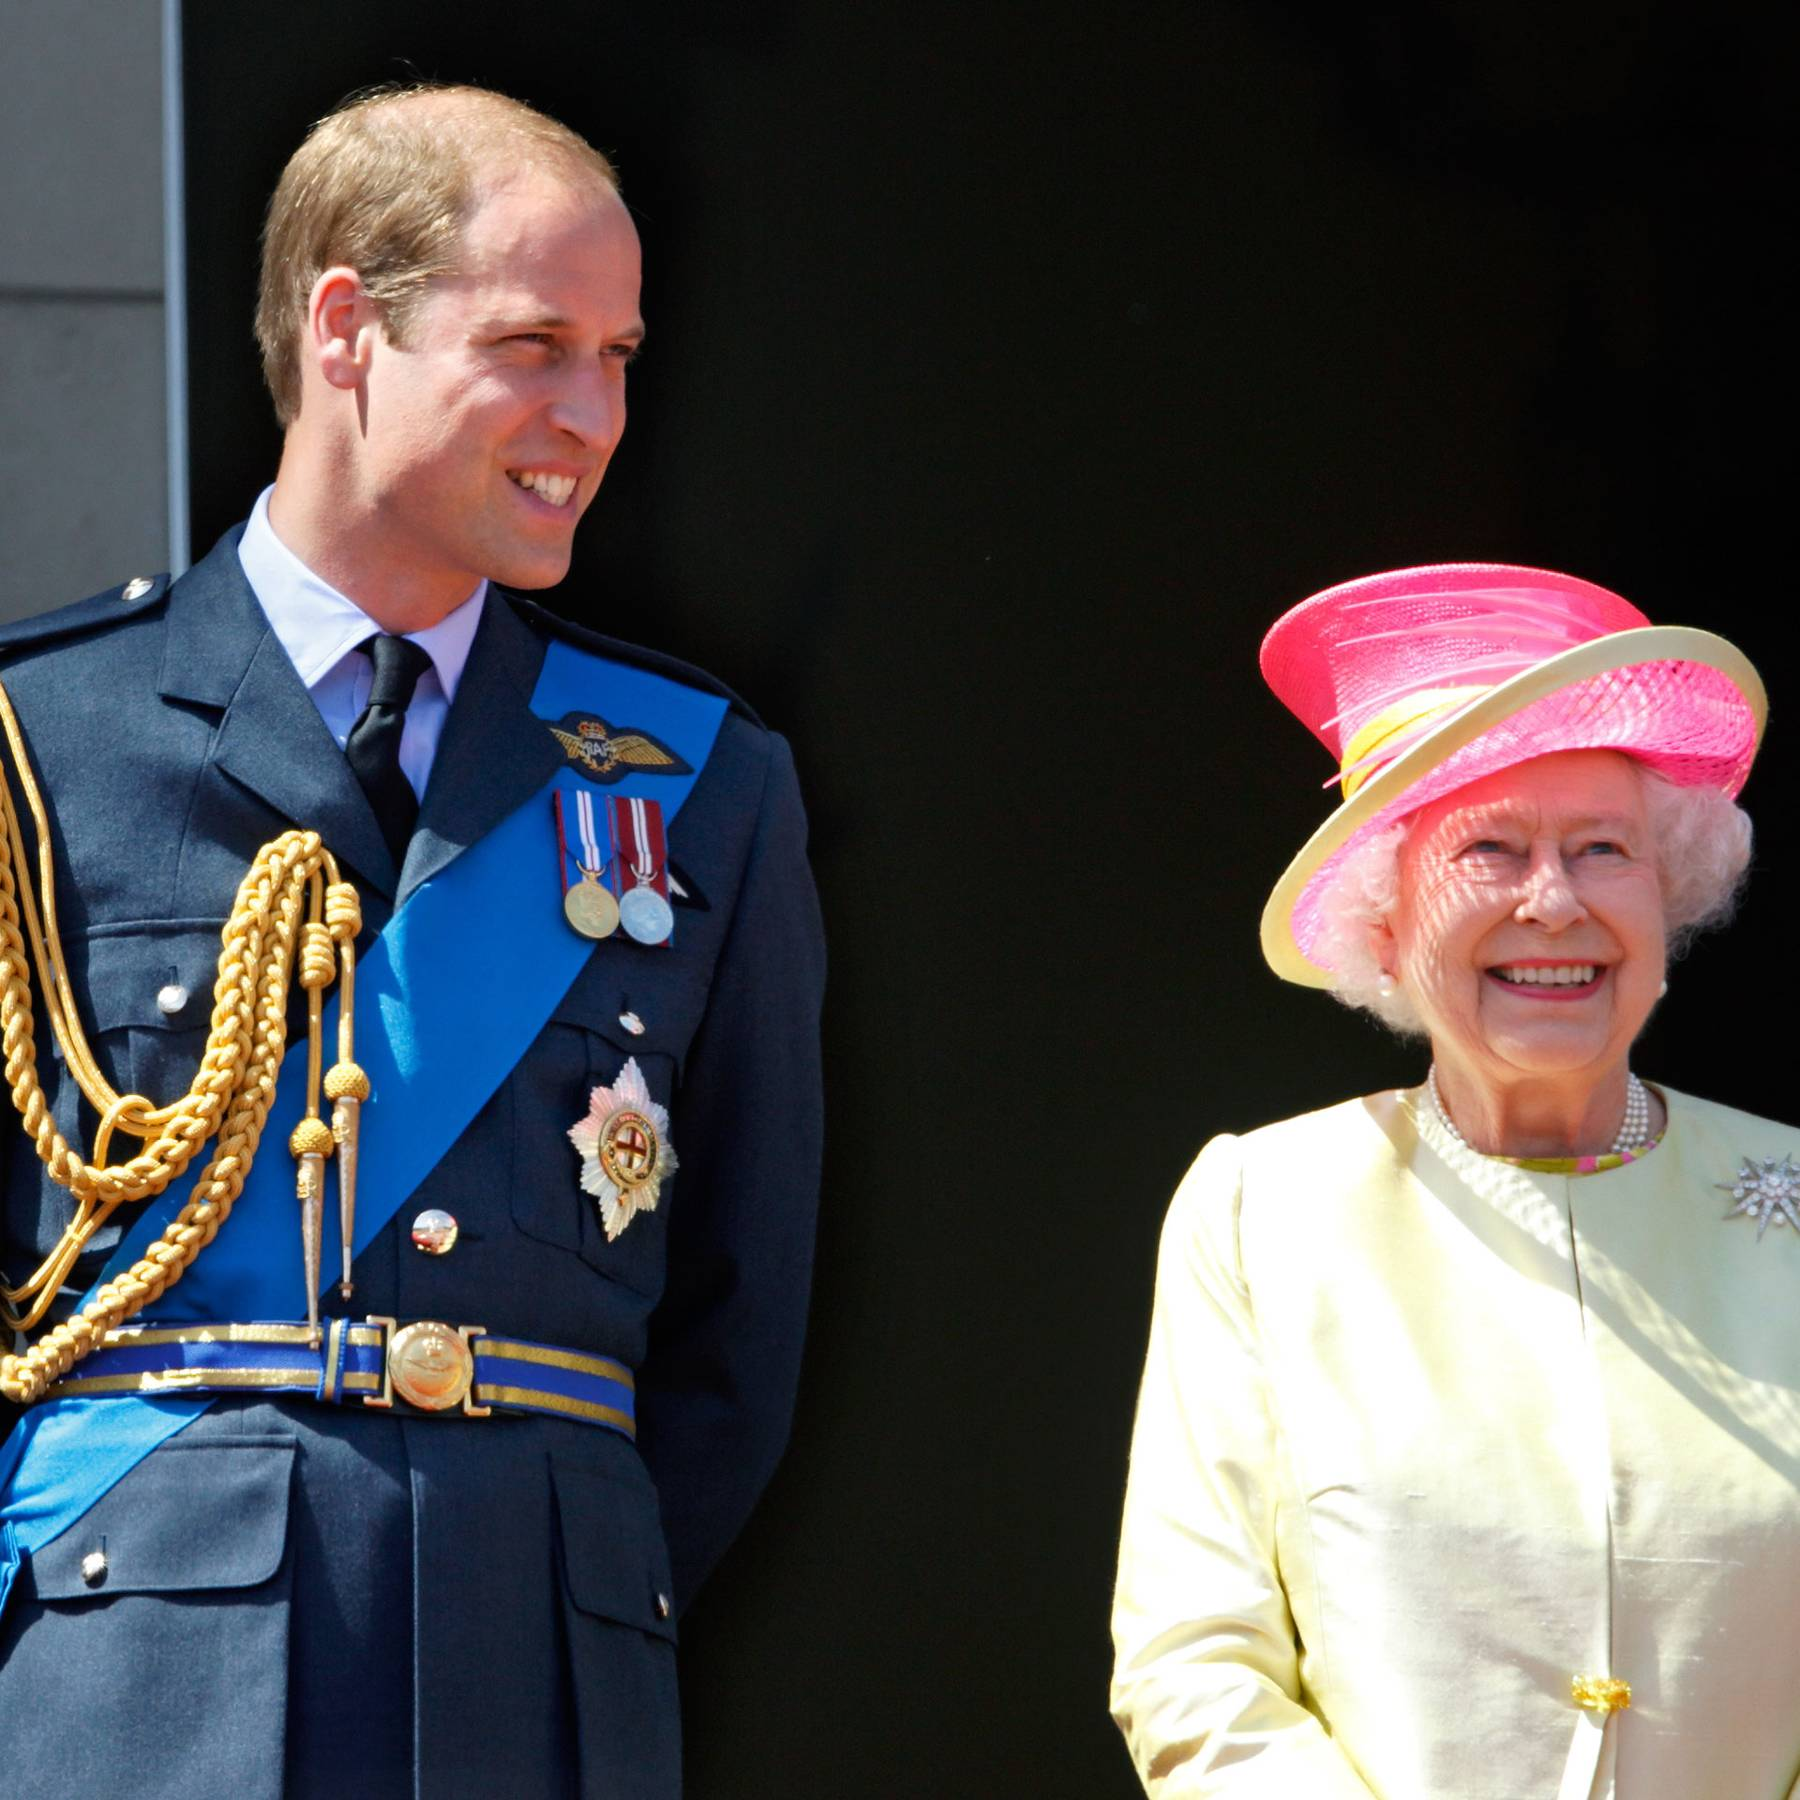 The Queen has granted Prince William a new title